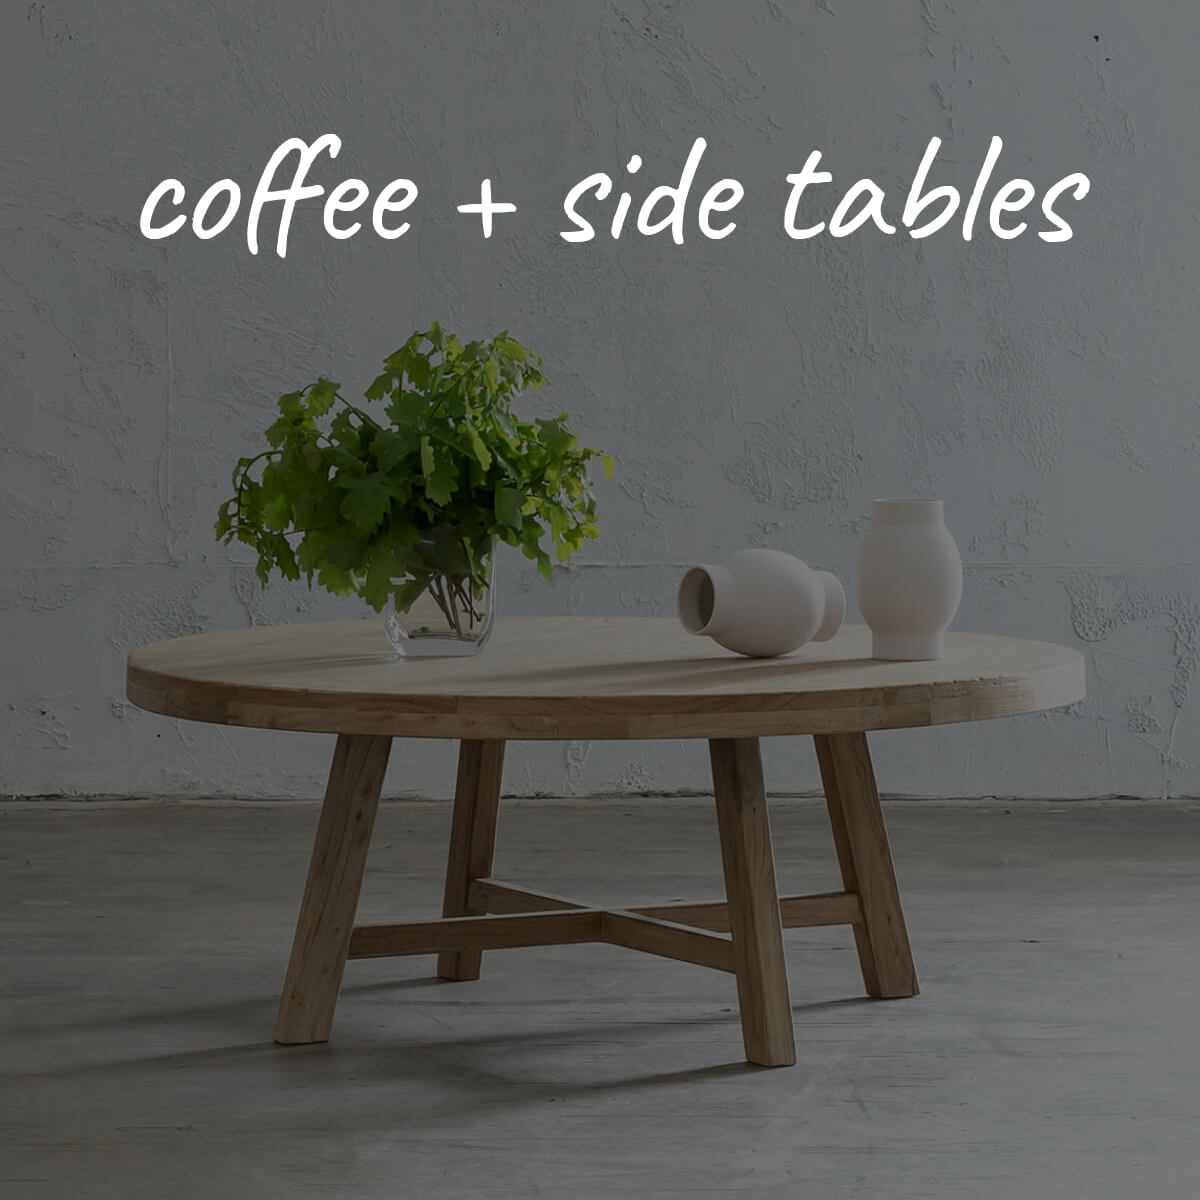 COFFEE + SIDE + HALL TABLES